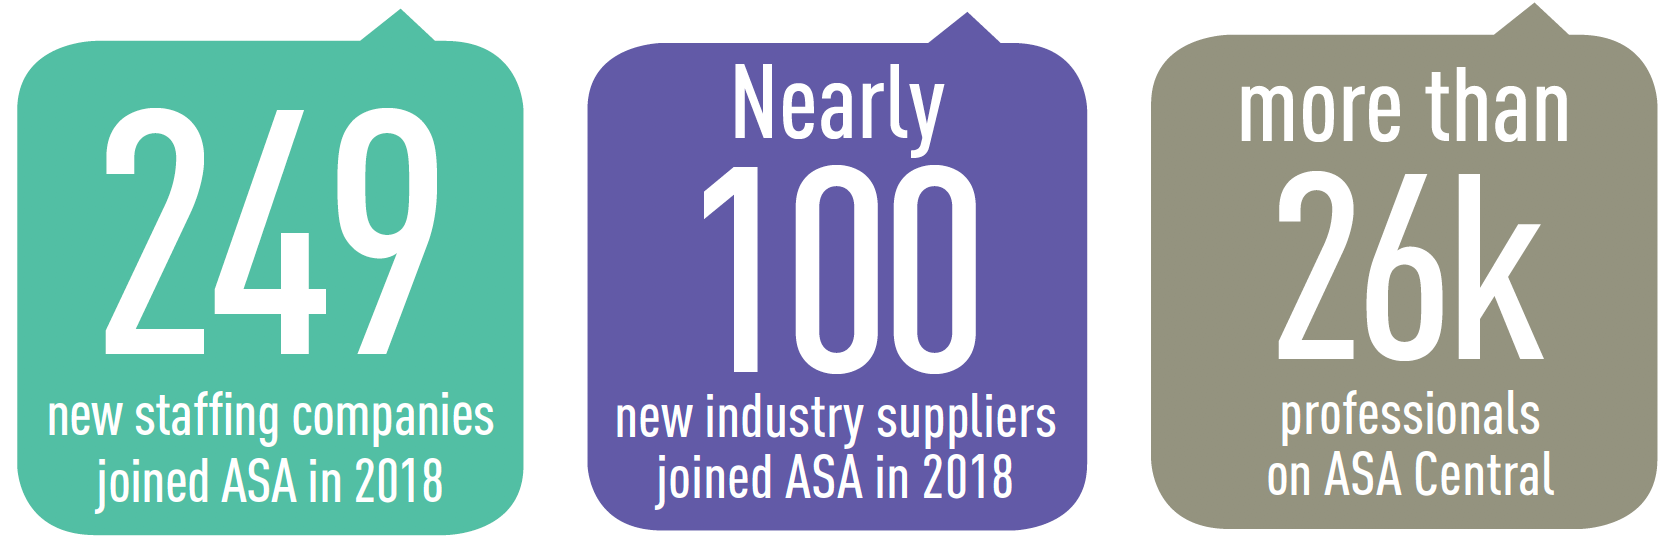 ASA Delivers the Largest Audience of Staffing Professionals